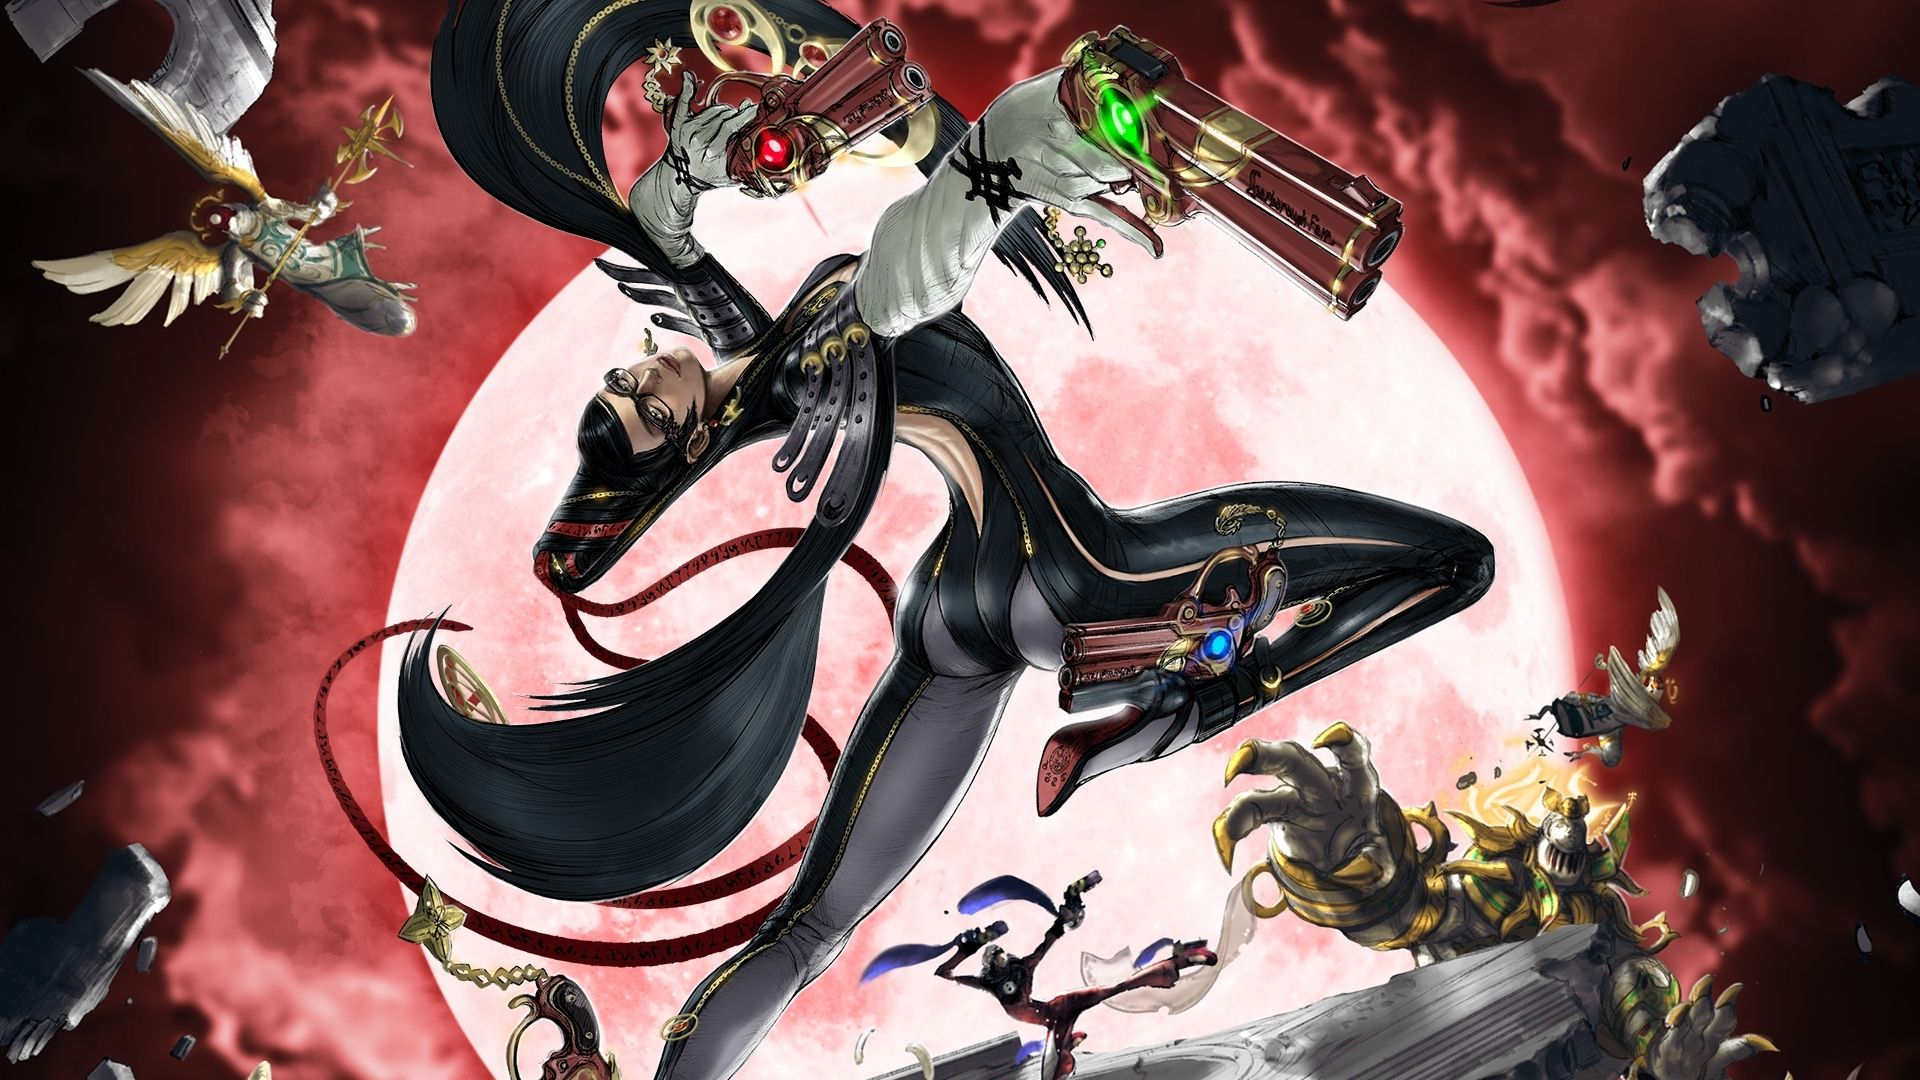 Bayonetta, as she appears in the first game in the series